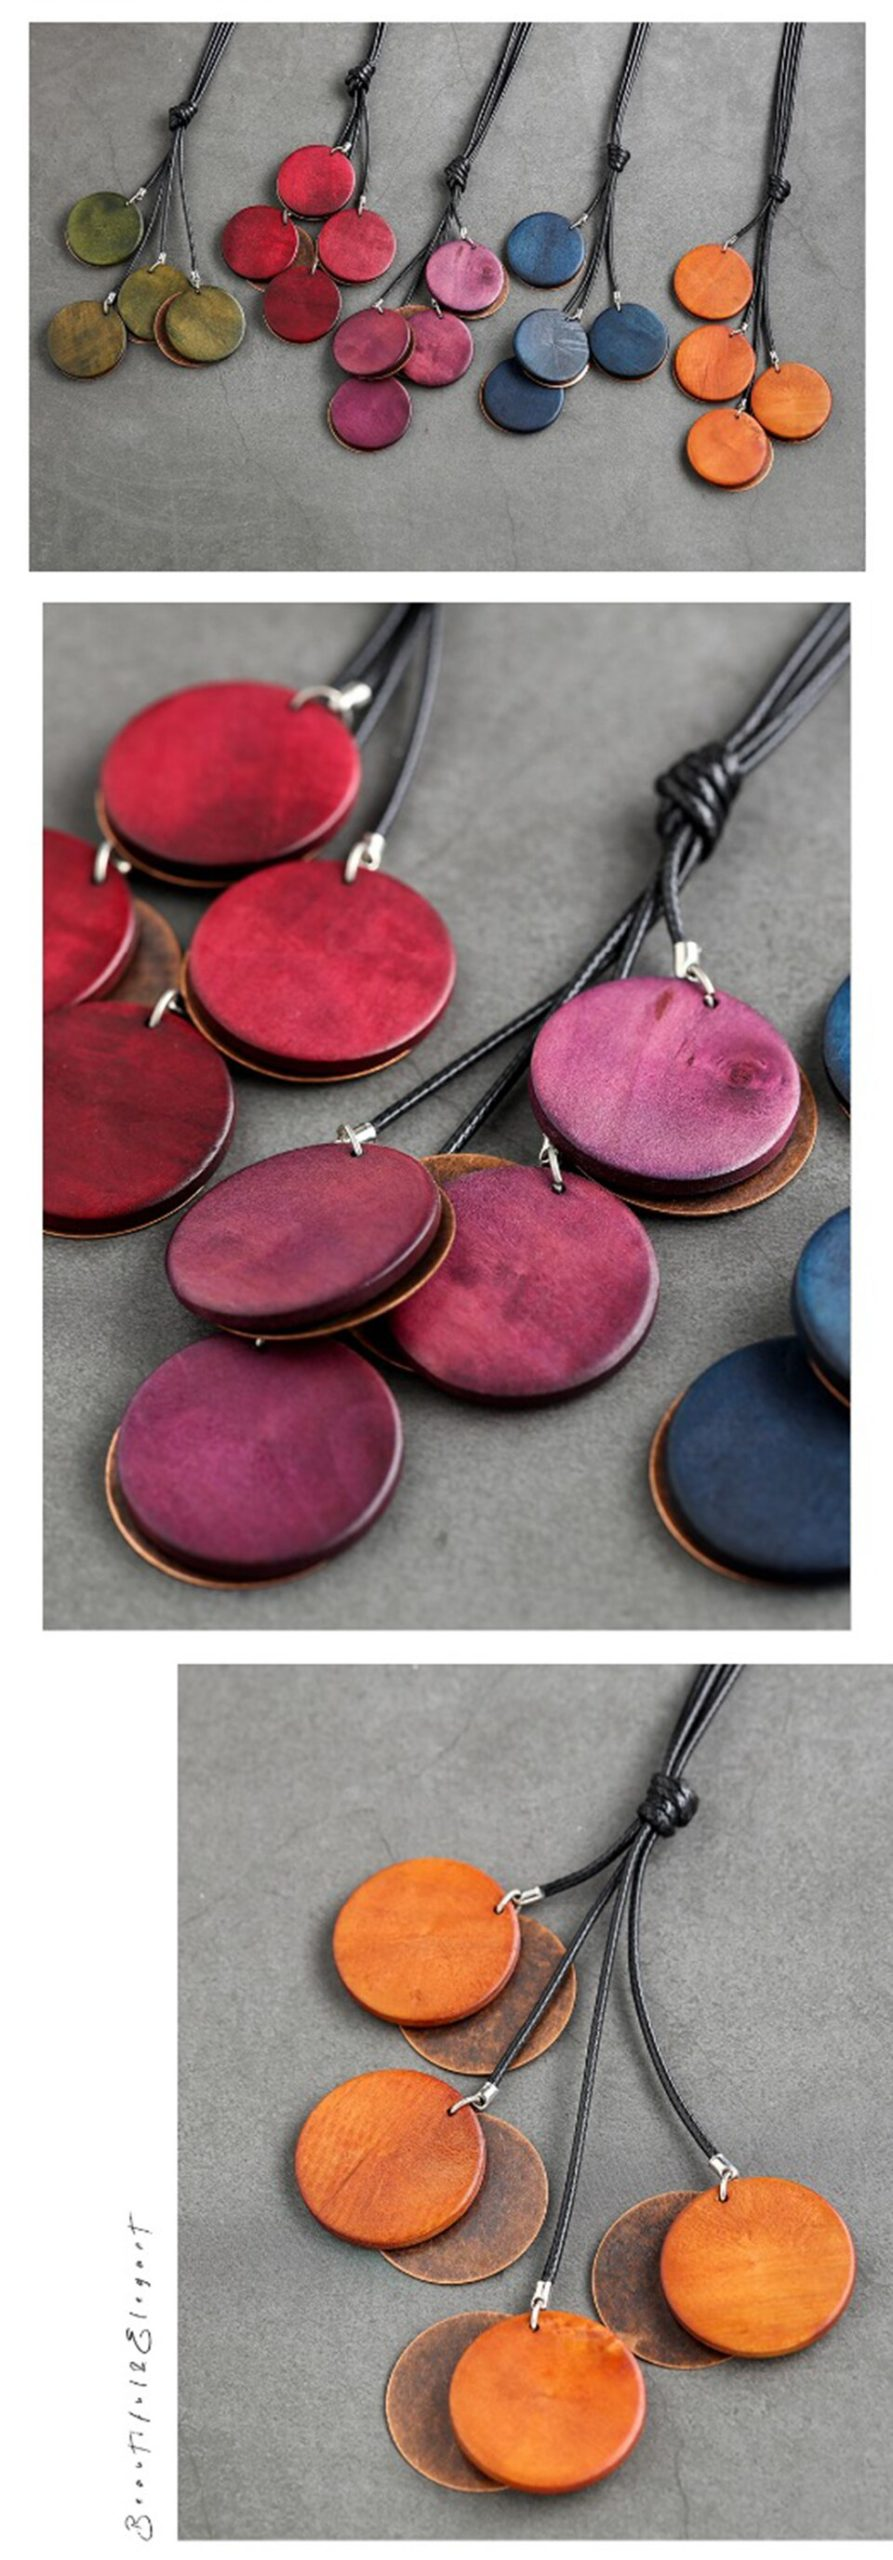 Vintage Wood Necklace Jewelry for Women Fashion Long Rope Chain Best Friends Pendant Female Handmade necklaces & pendants 2020